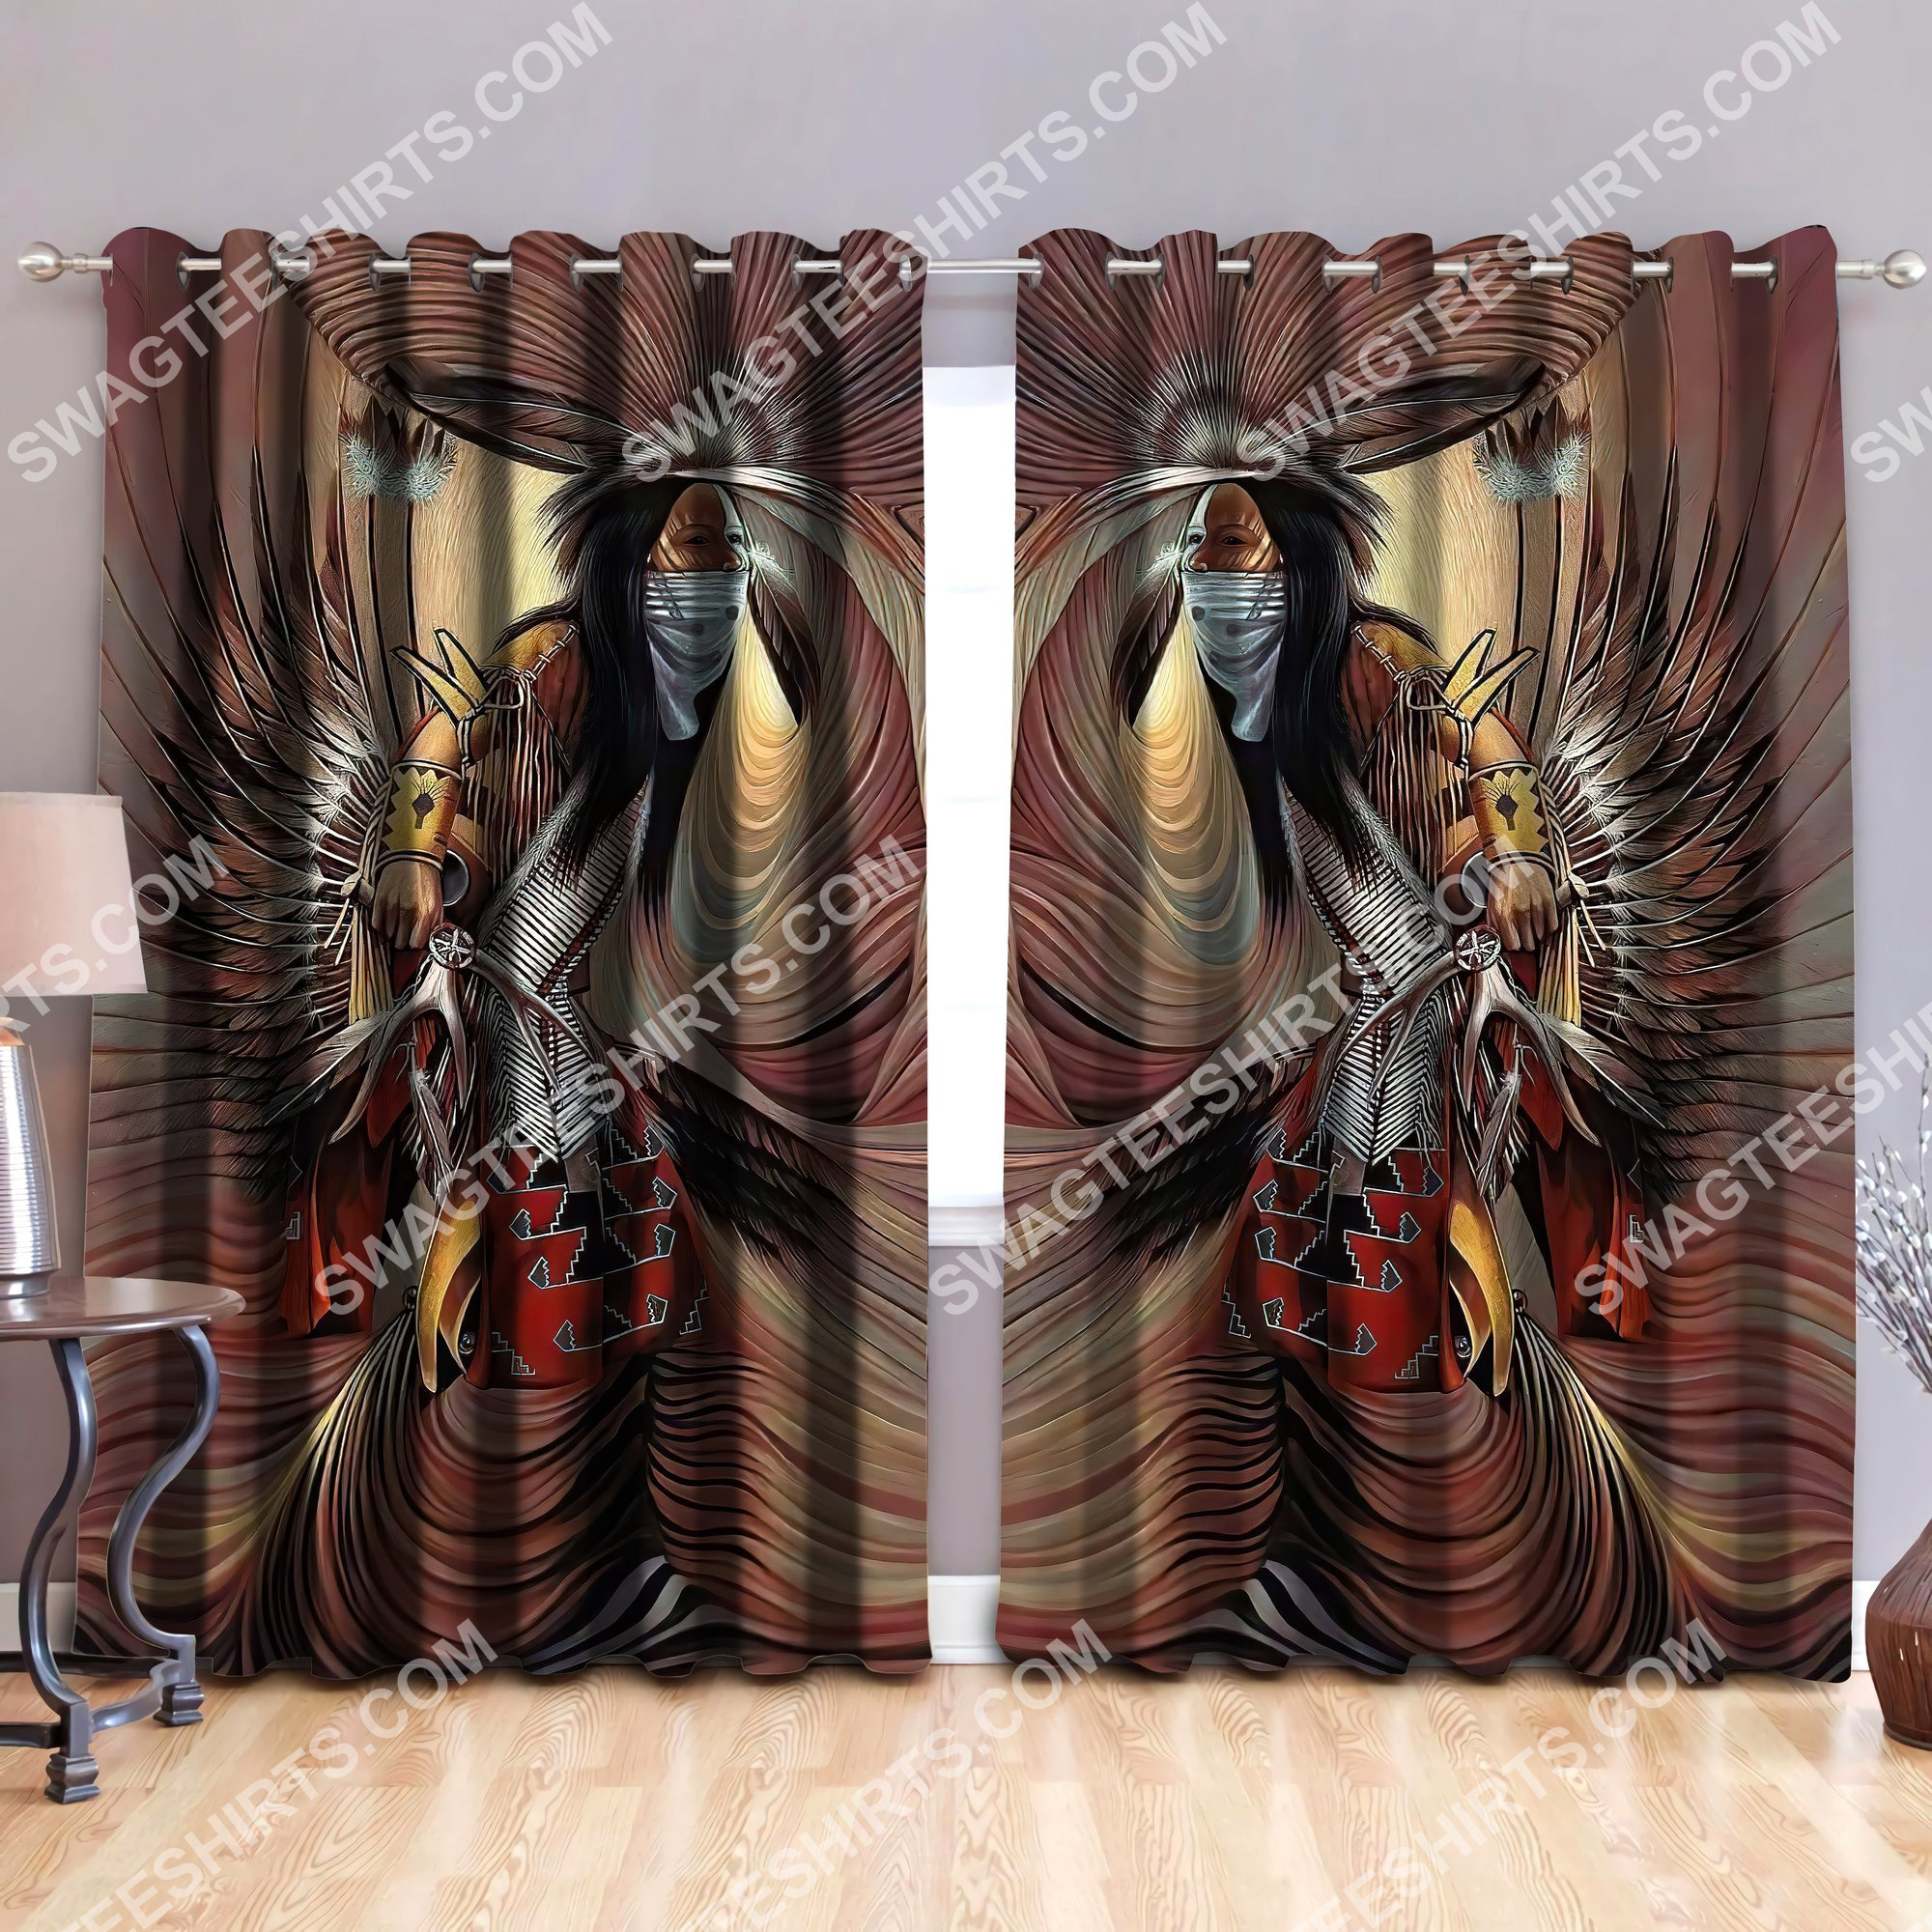 native american man all over printed window curtains 2(3) - Copy